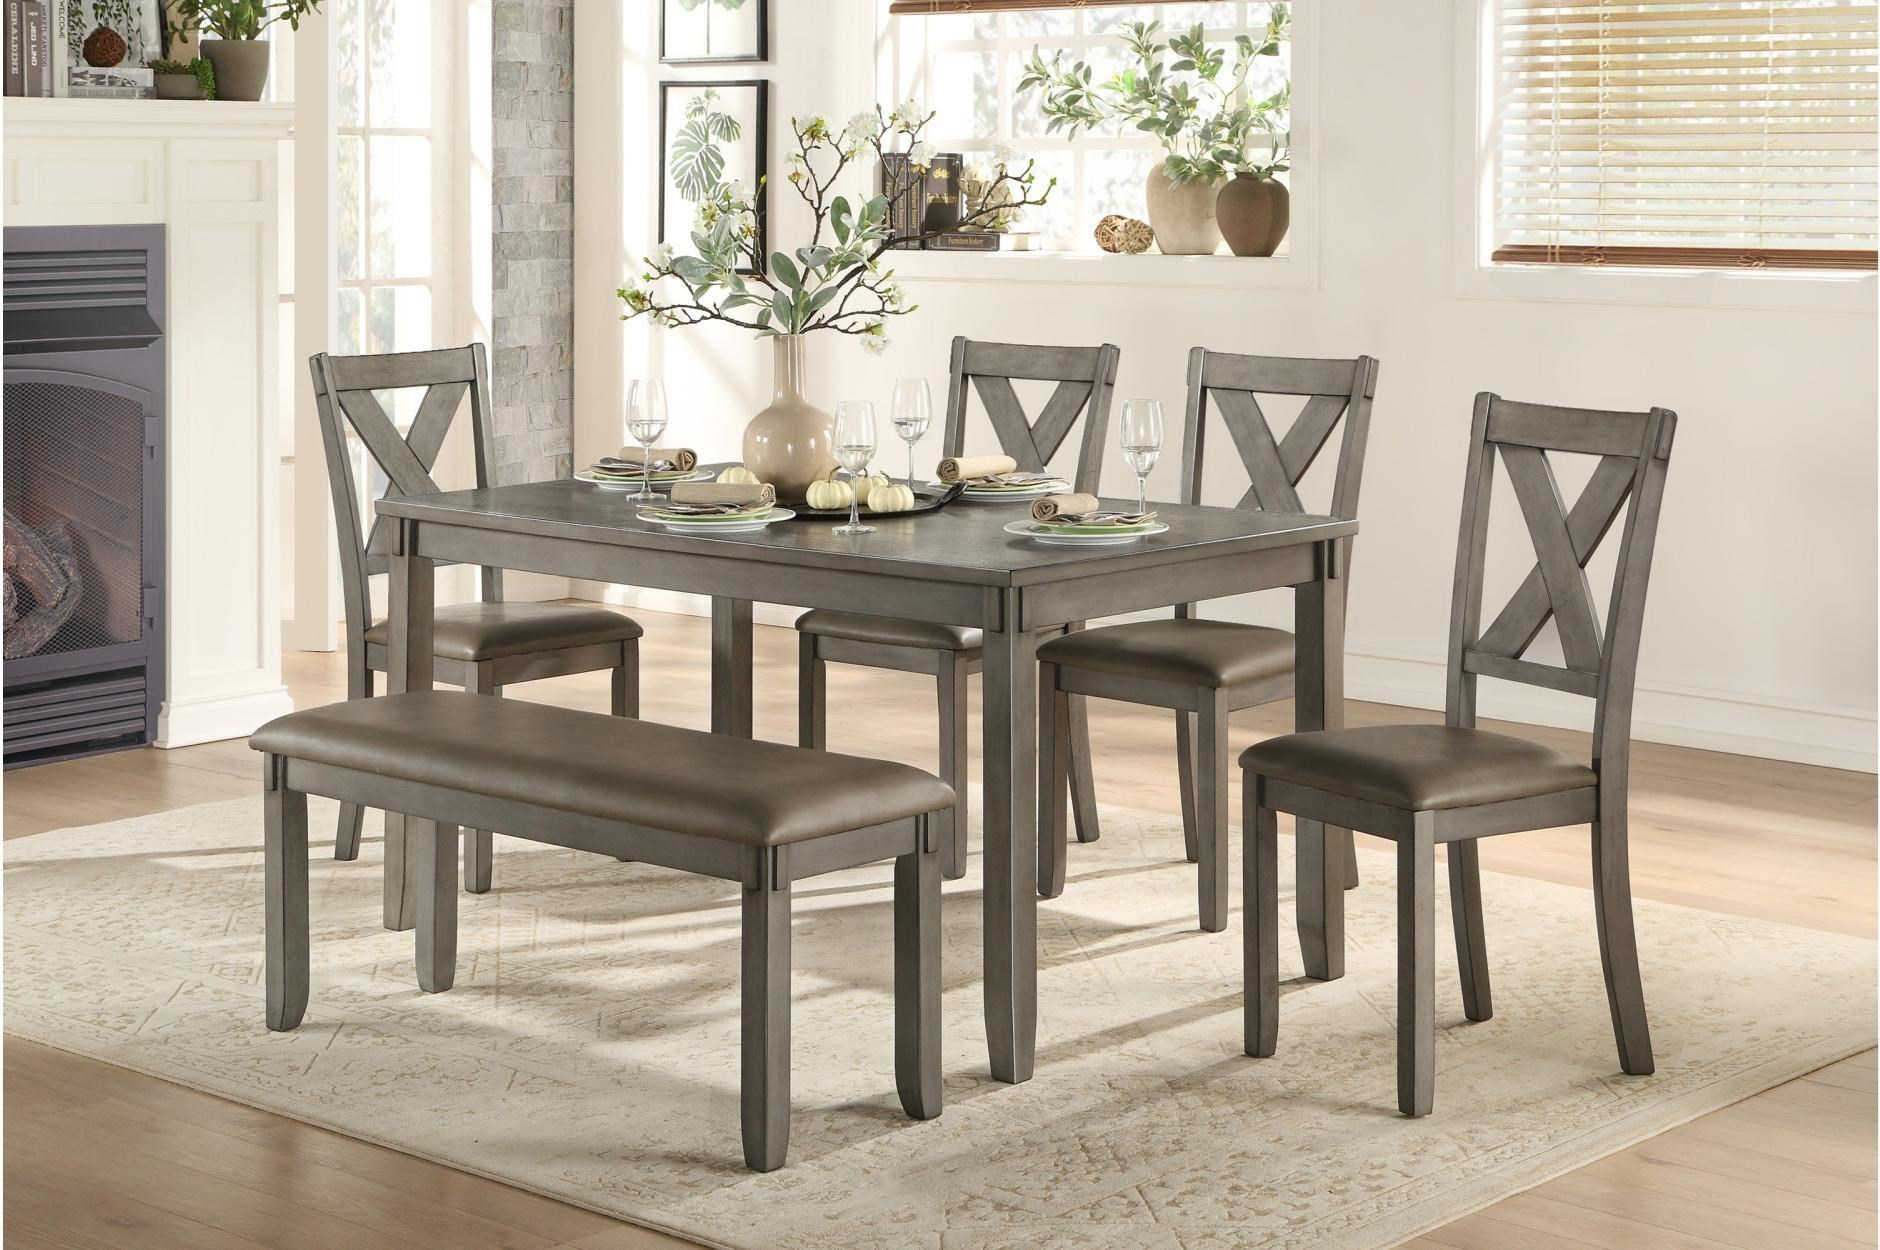 Holders 5 Piece Dining Set W/Free Bench by Homelegance at Darvin Furniture